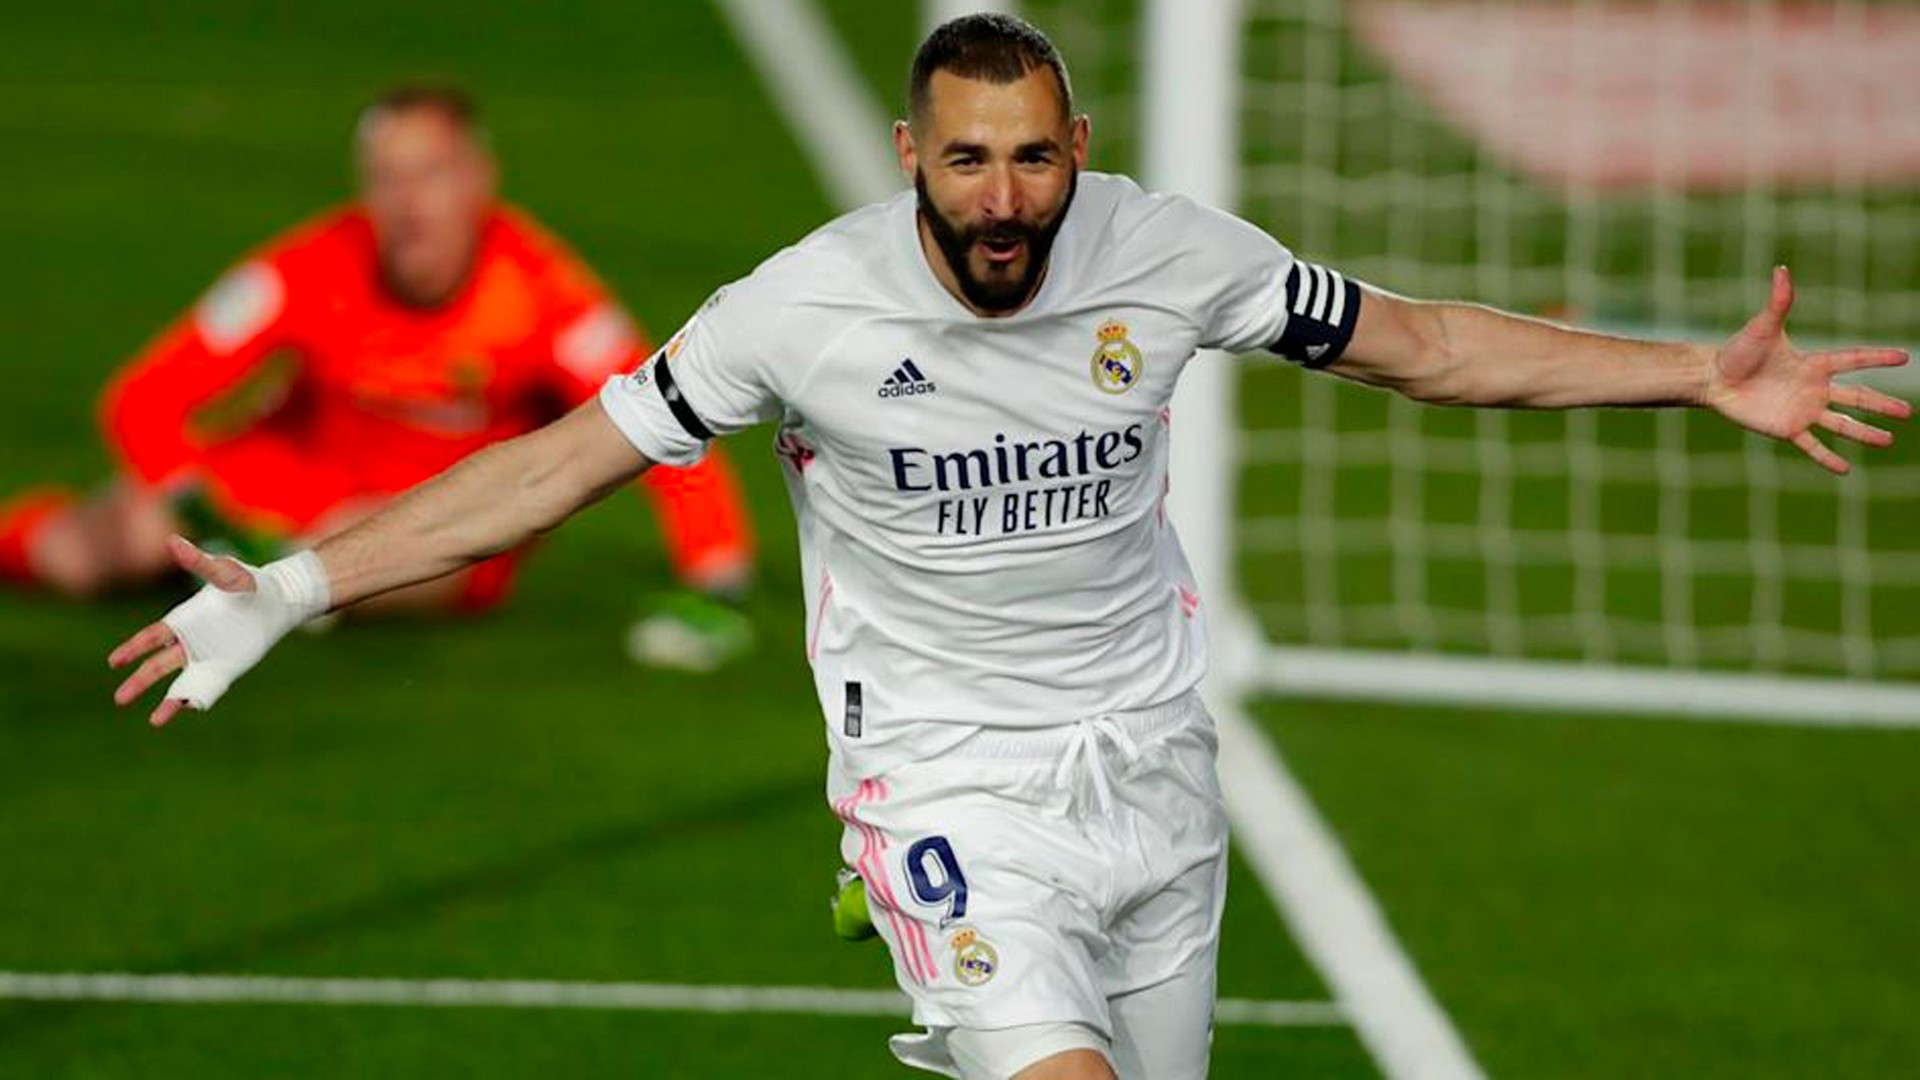 Real Madrid will look to build on last weekend's victory over Barcelona